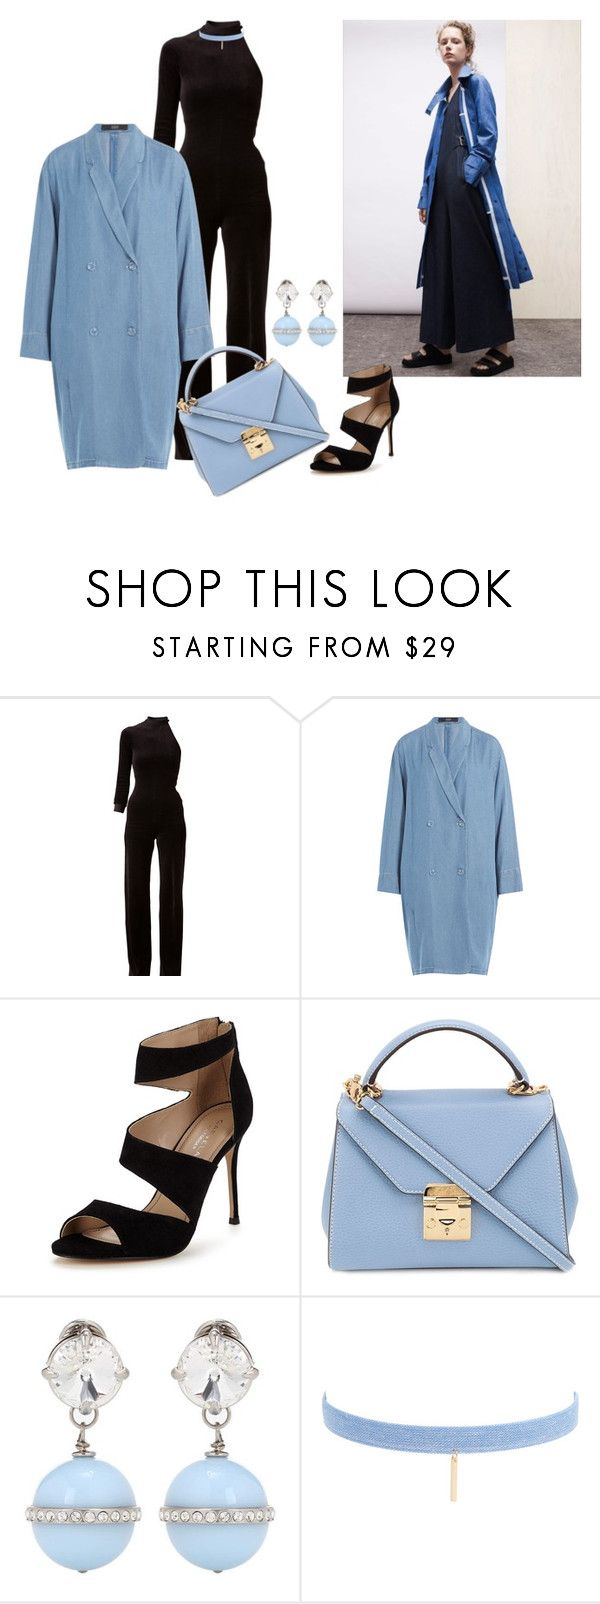 """""""Untitled #762"""" by bsimontwin ❤ liked on Polyvore featuring Vetements, Steffen Schraut, Carvela, Mark Cross, Miu Miu and Jules Smith"""